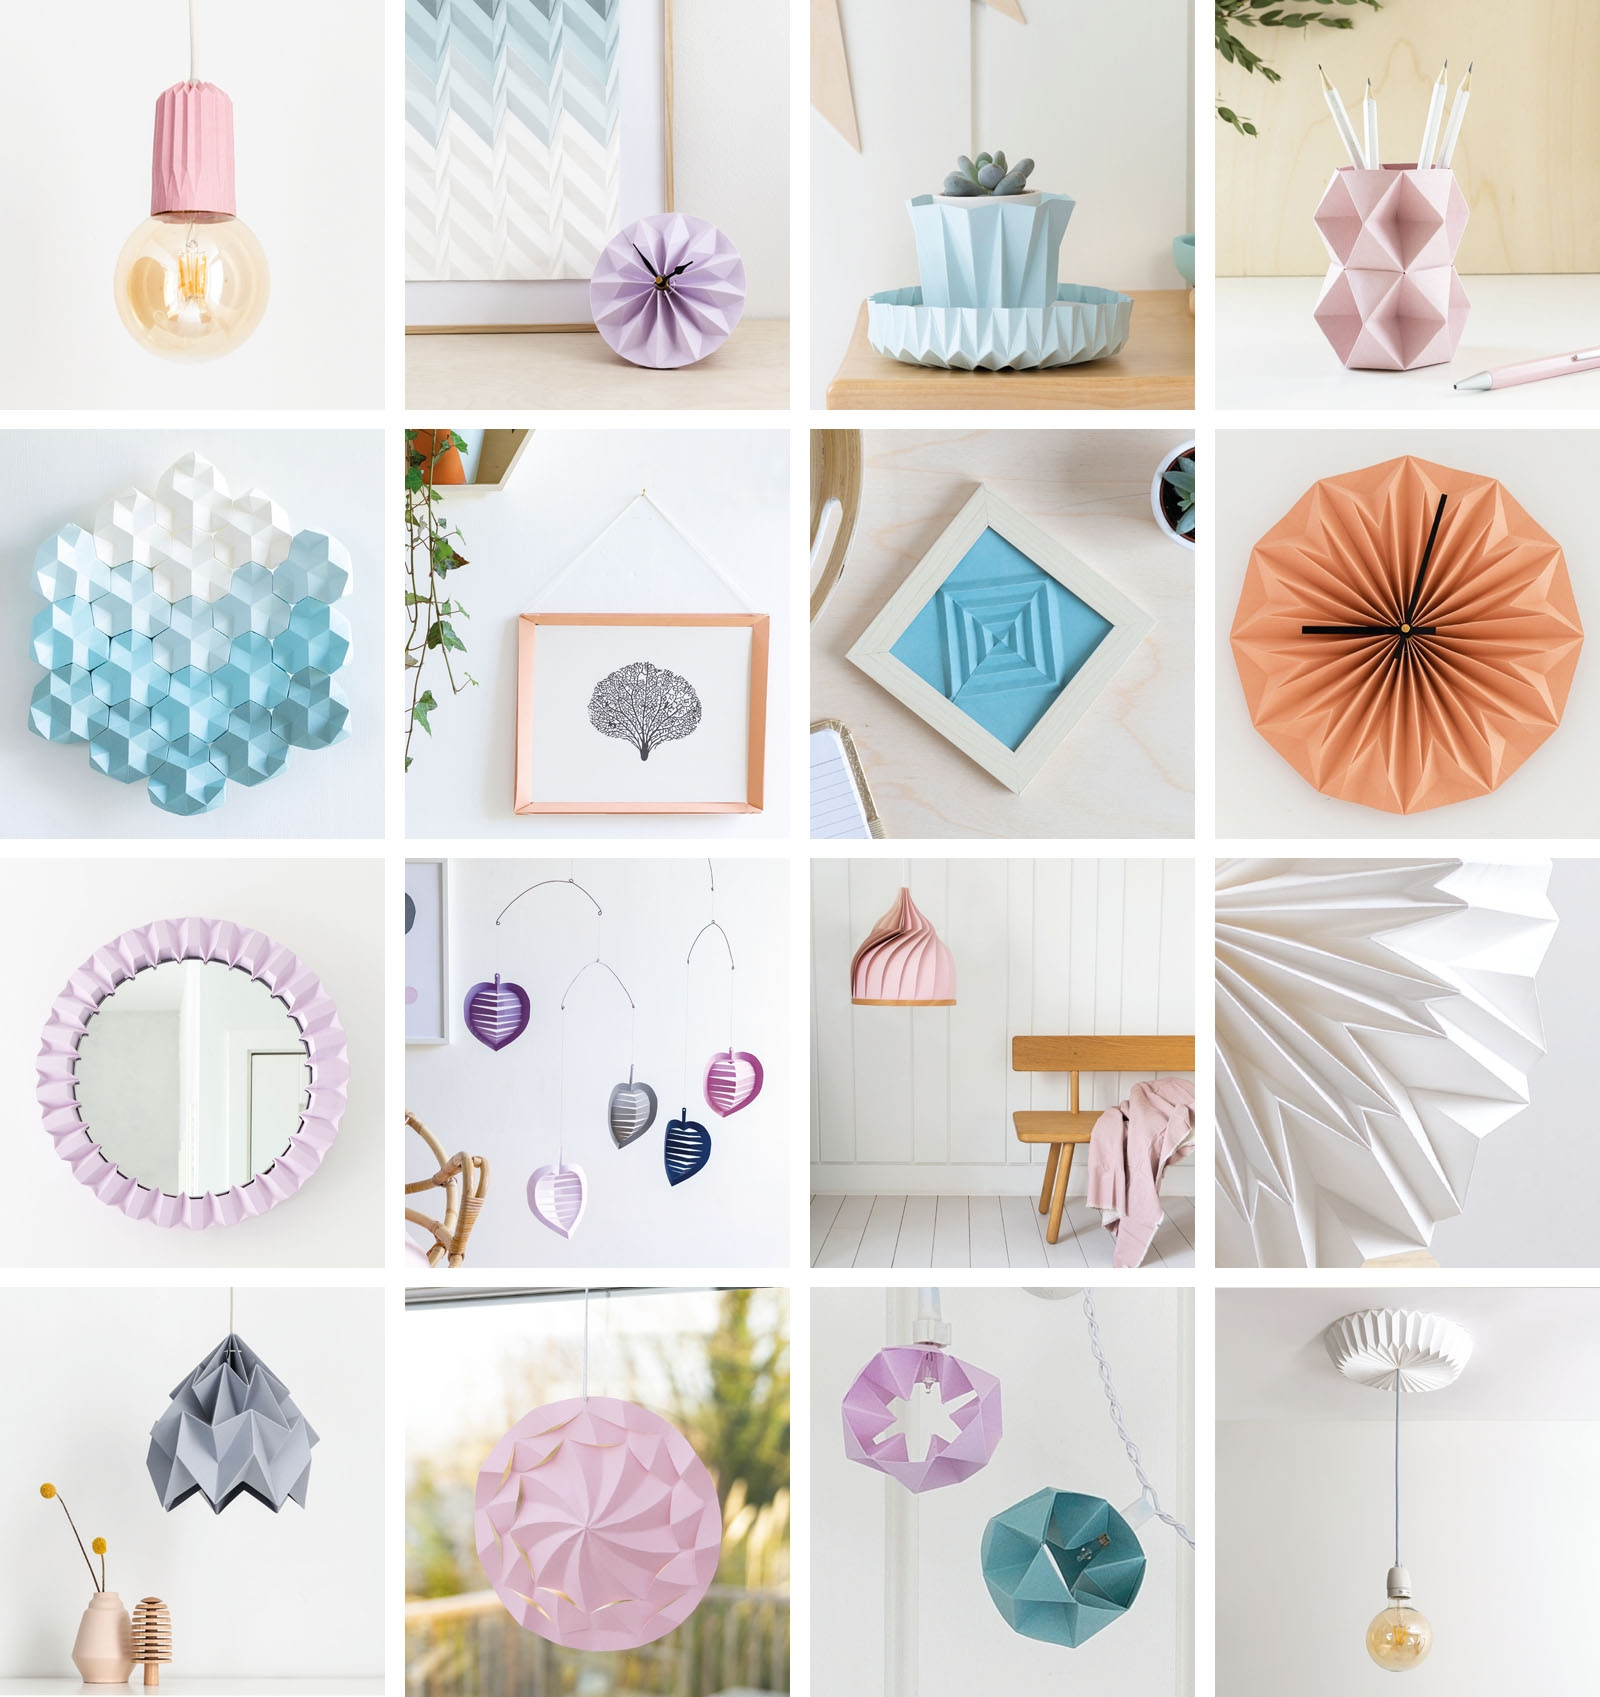 16 projects from Better Living Through Origami